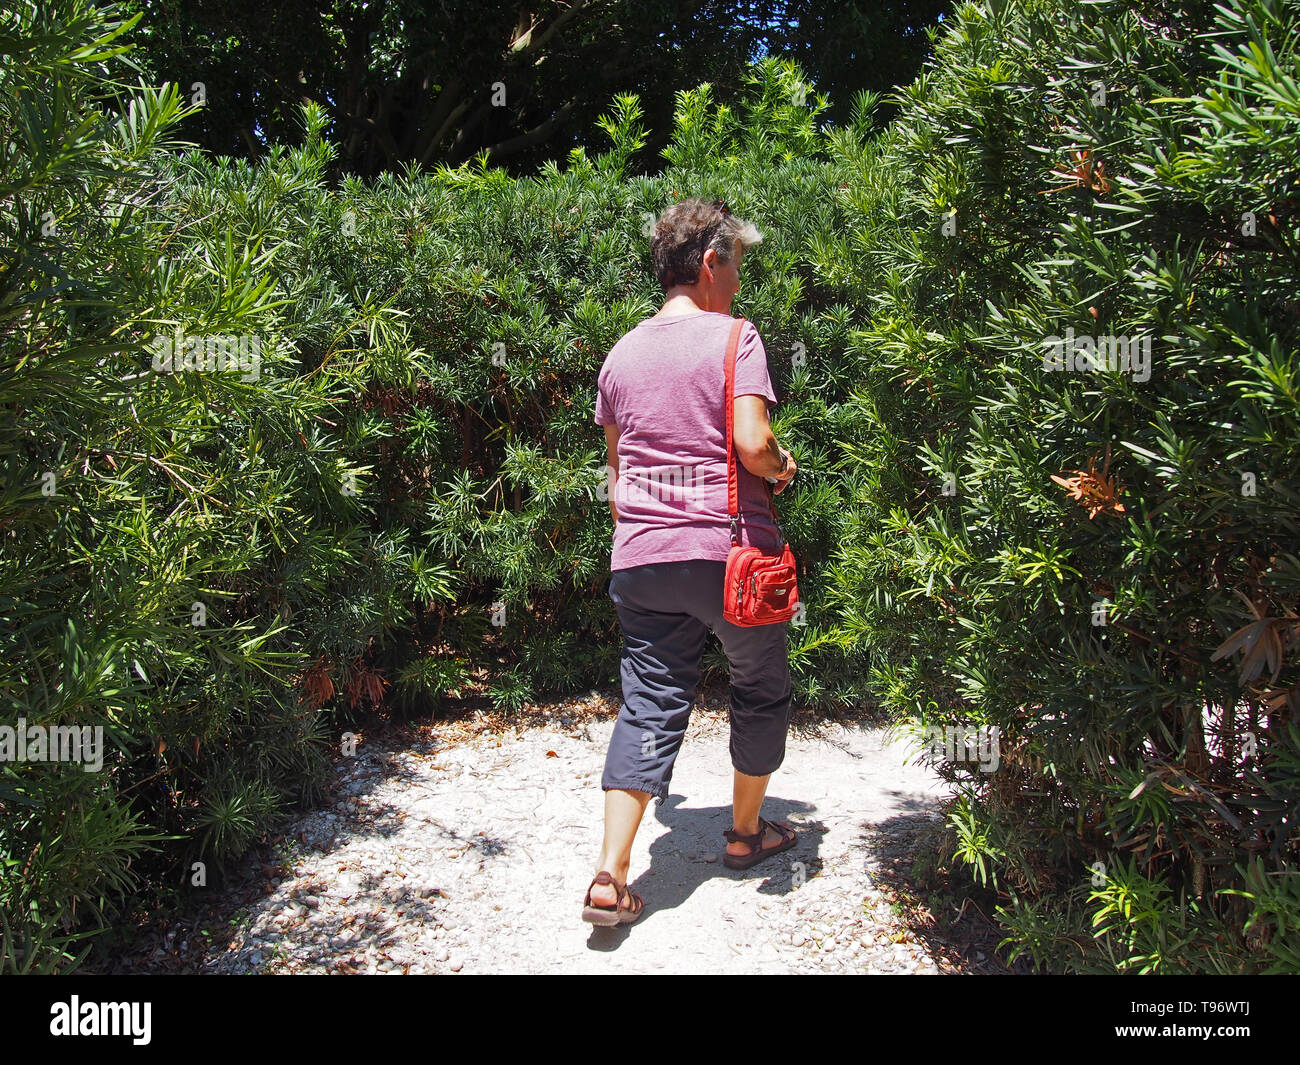 Woman tourist walking through labyrinth in the Avant-garden at the Dali Museum in St. Petersburg, Florida, USA, May 8, 2019, © Katharine Andriotis - Stock Image